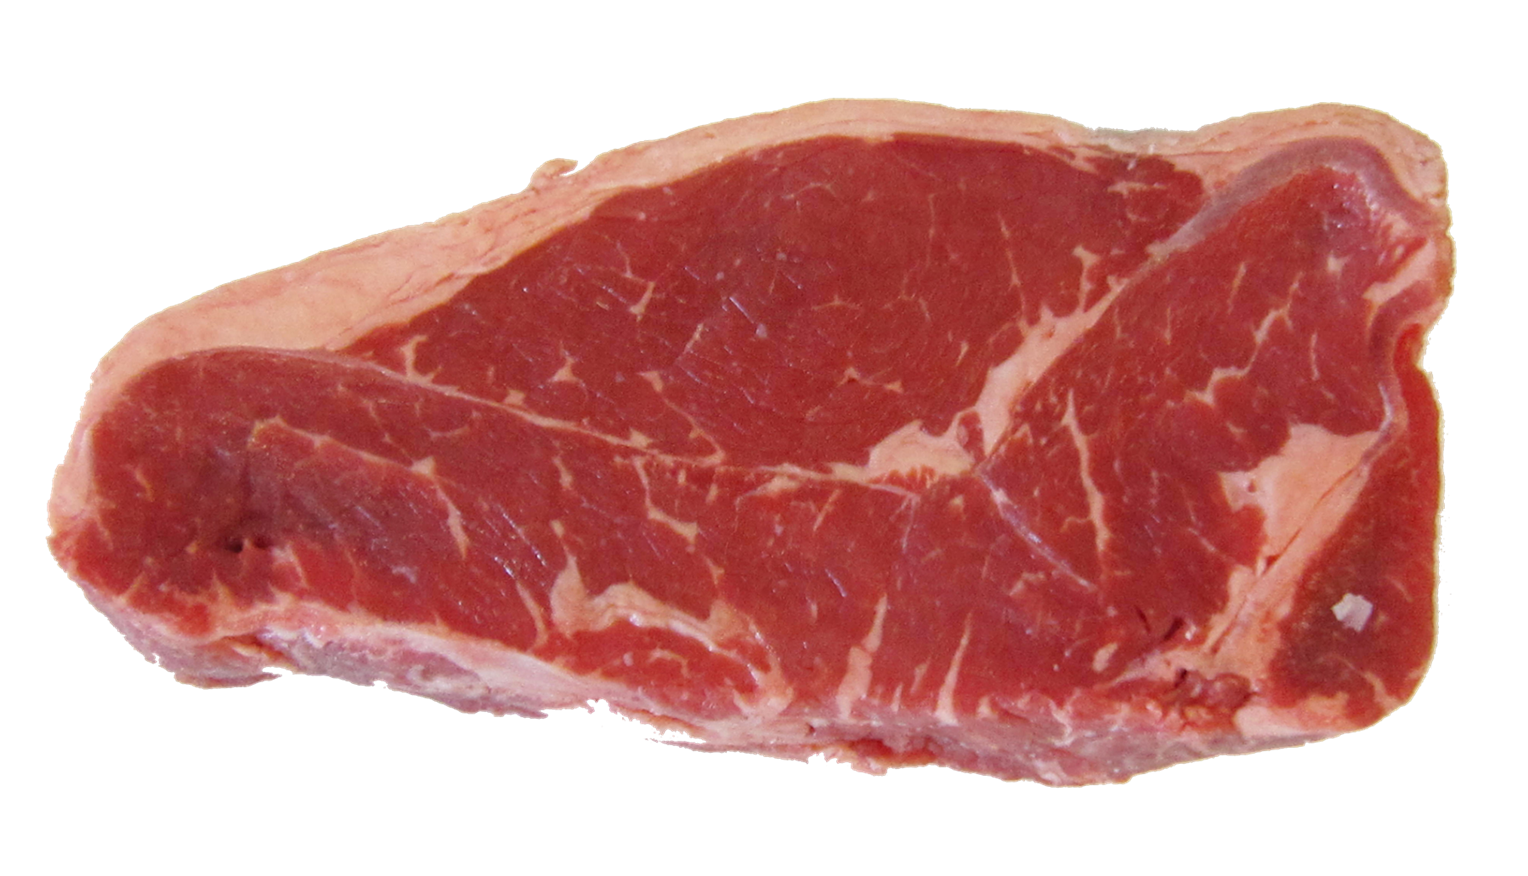 Raw Meat PNG File